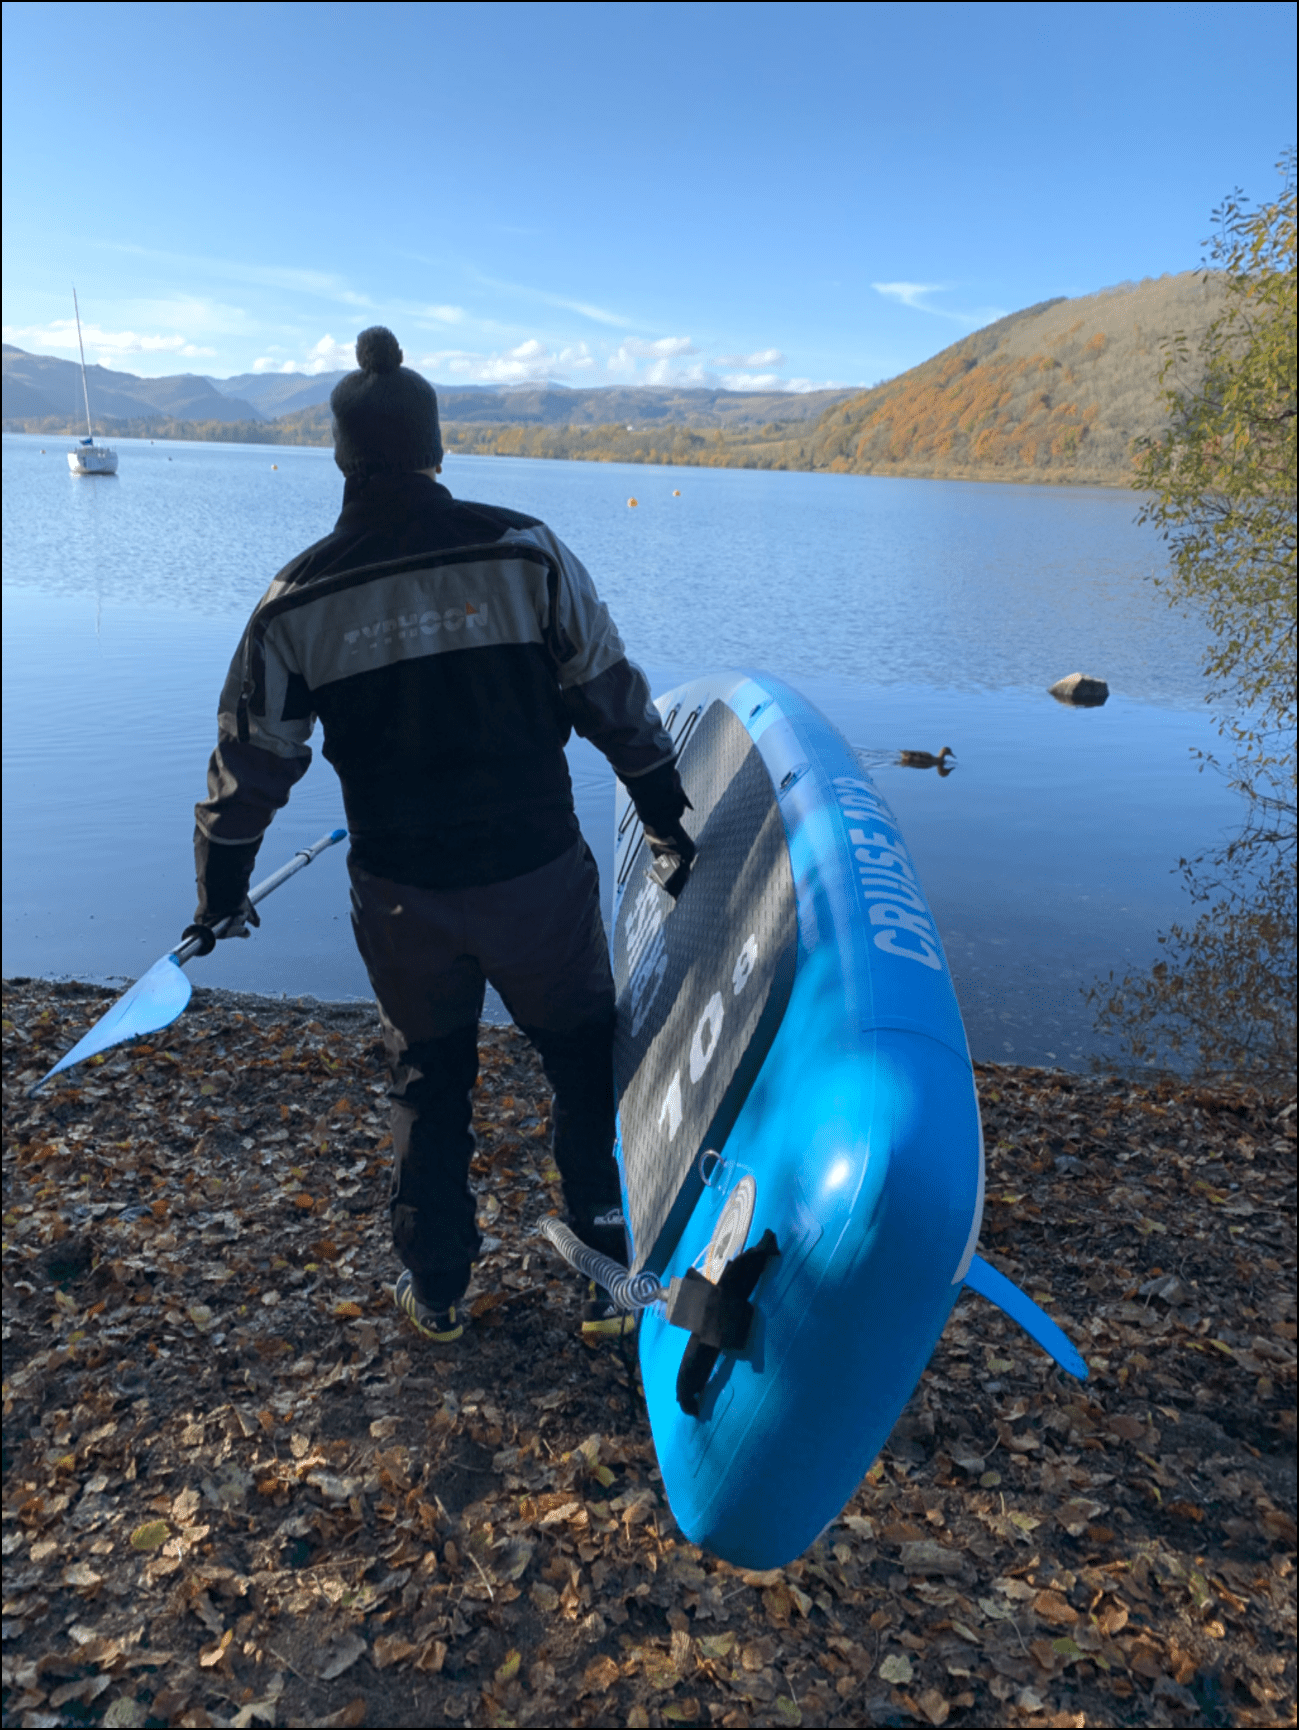 Stand Up Paddleboarding: I Benefici, Stand Up Paddleboarding: I Benefici